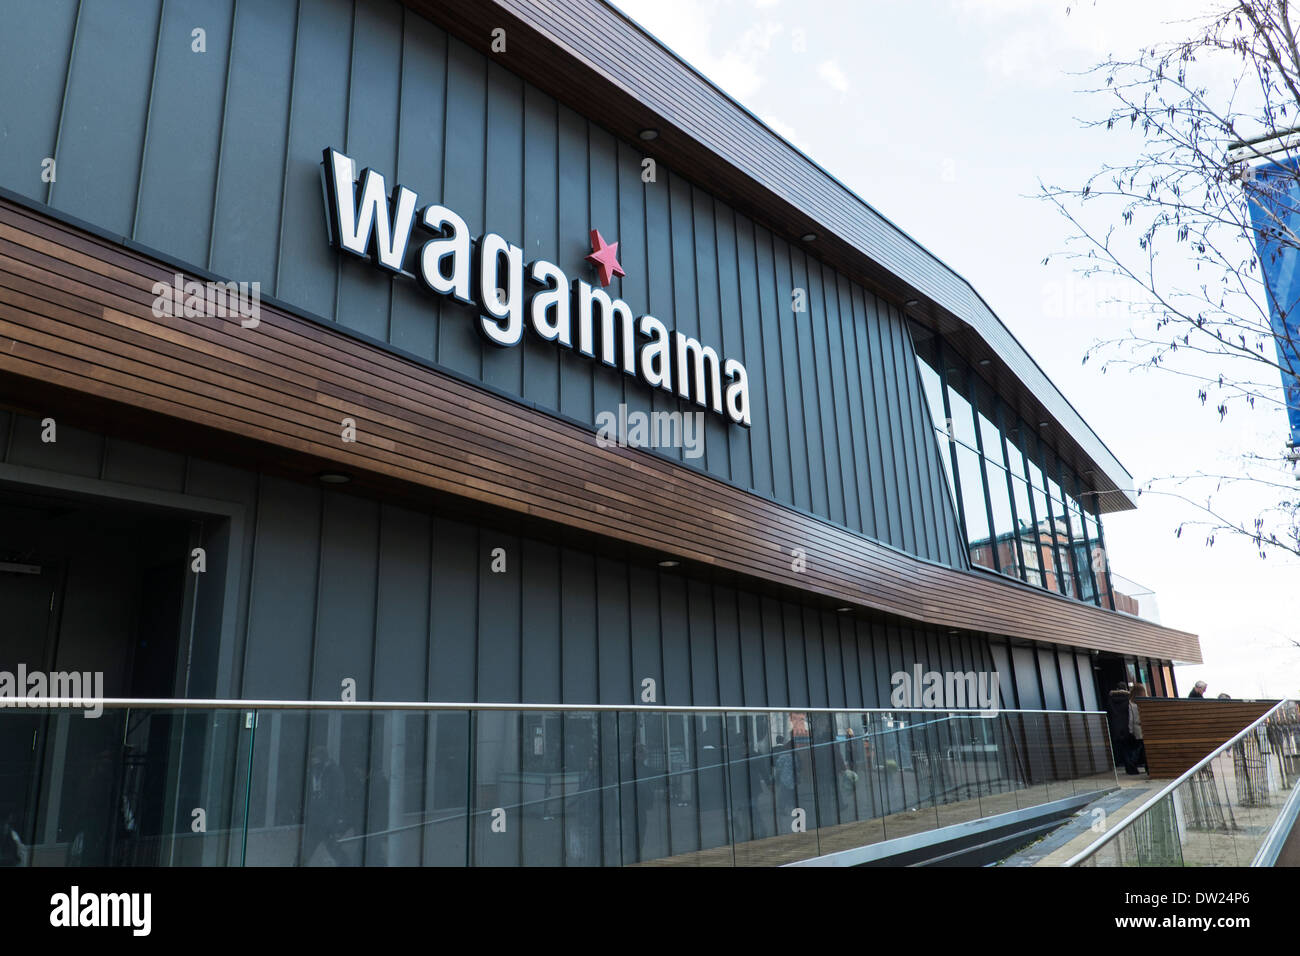 Restaurant Facade wagamama japanese restaurant sign building exterior facade outside